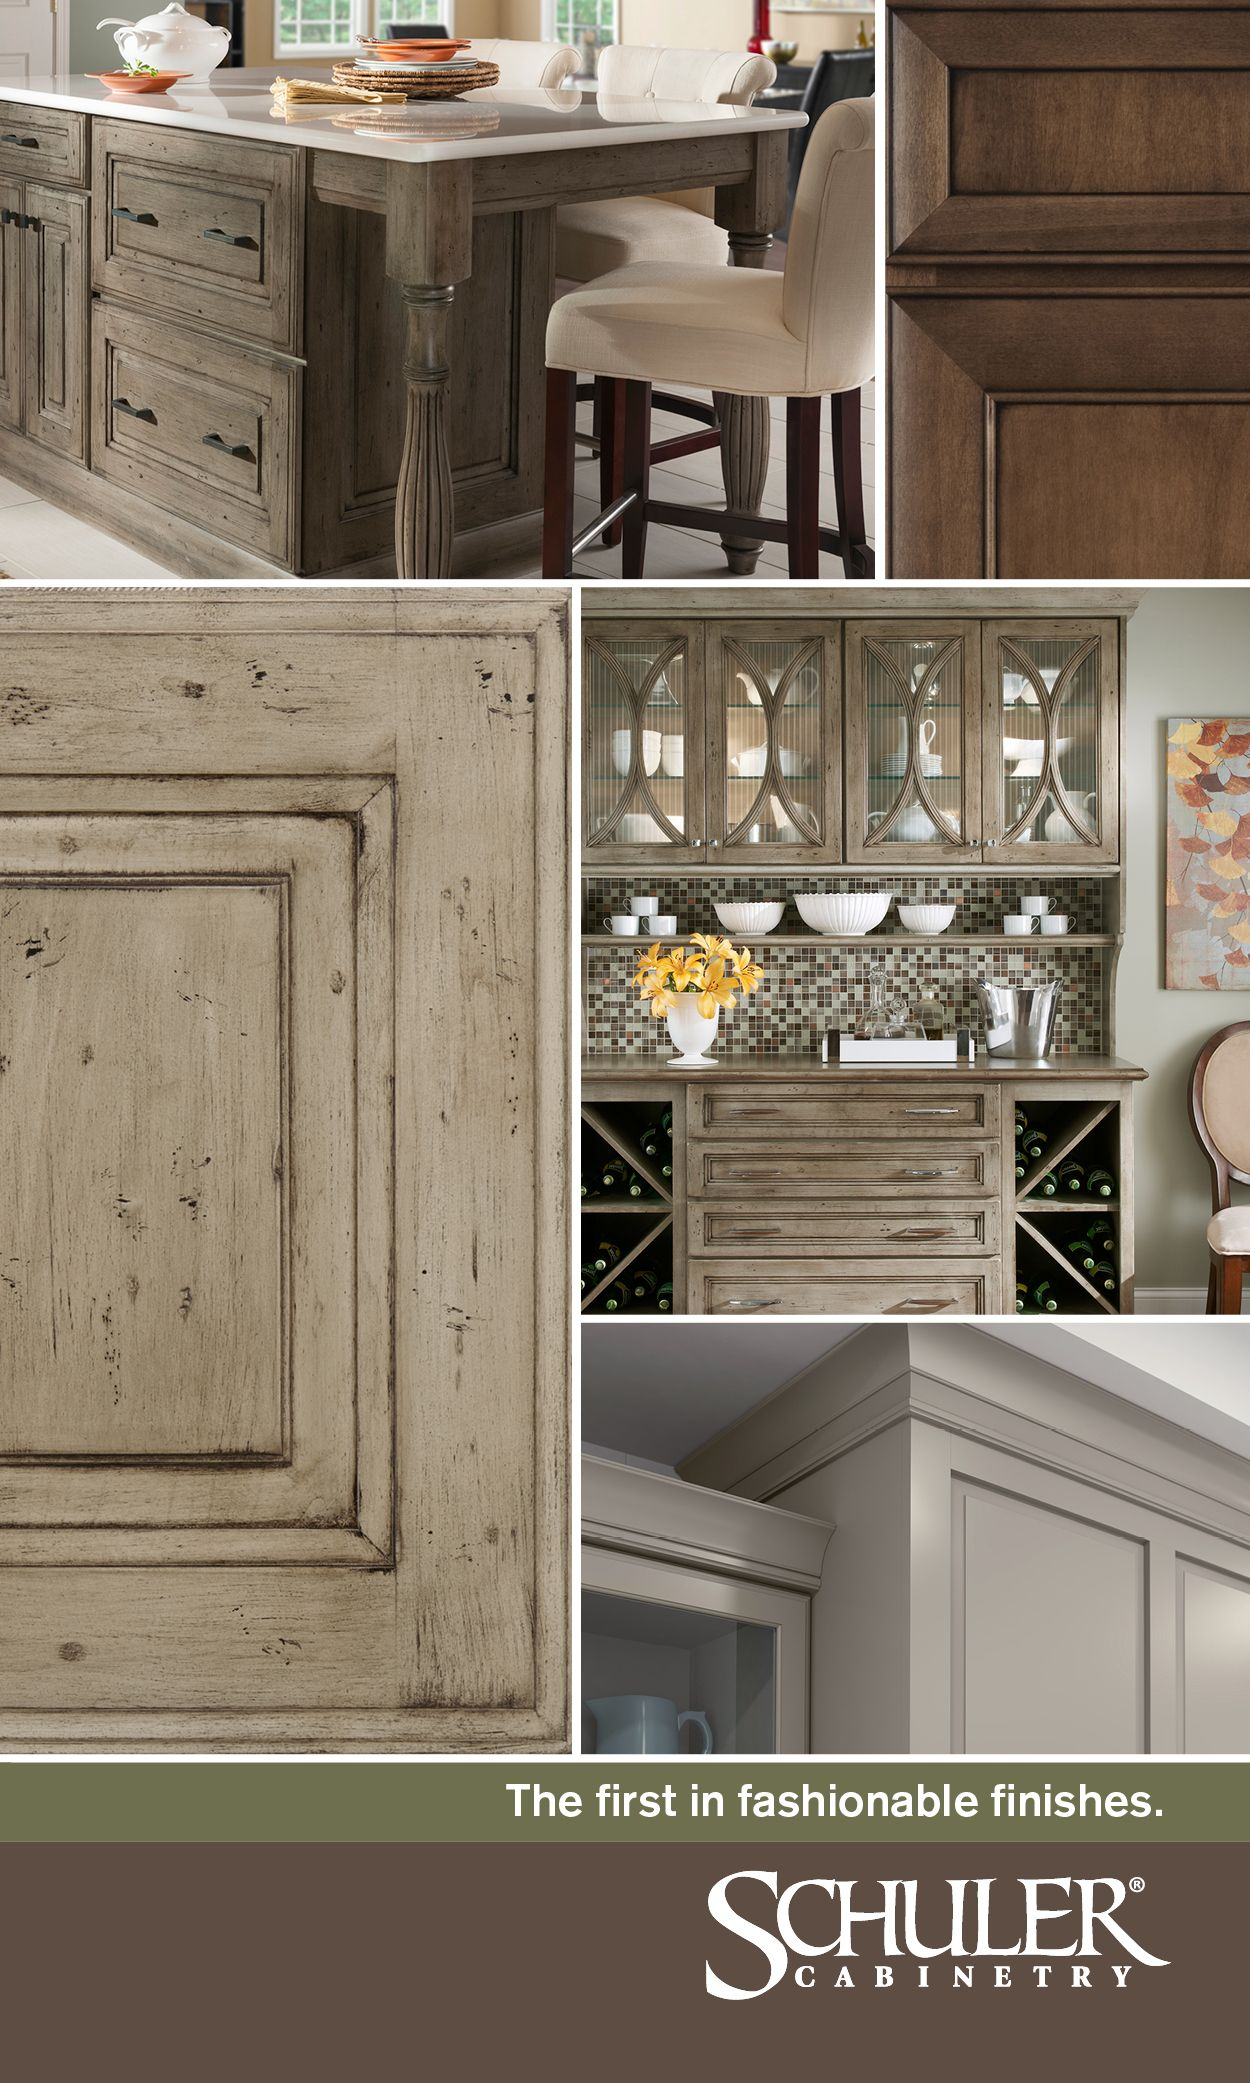 Schuler Cabinetry Is The First In Fashionable Finishes